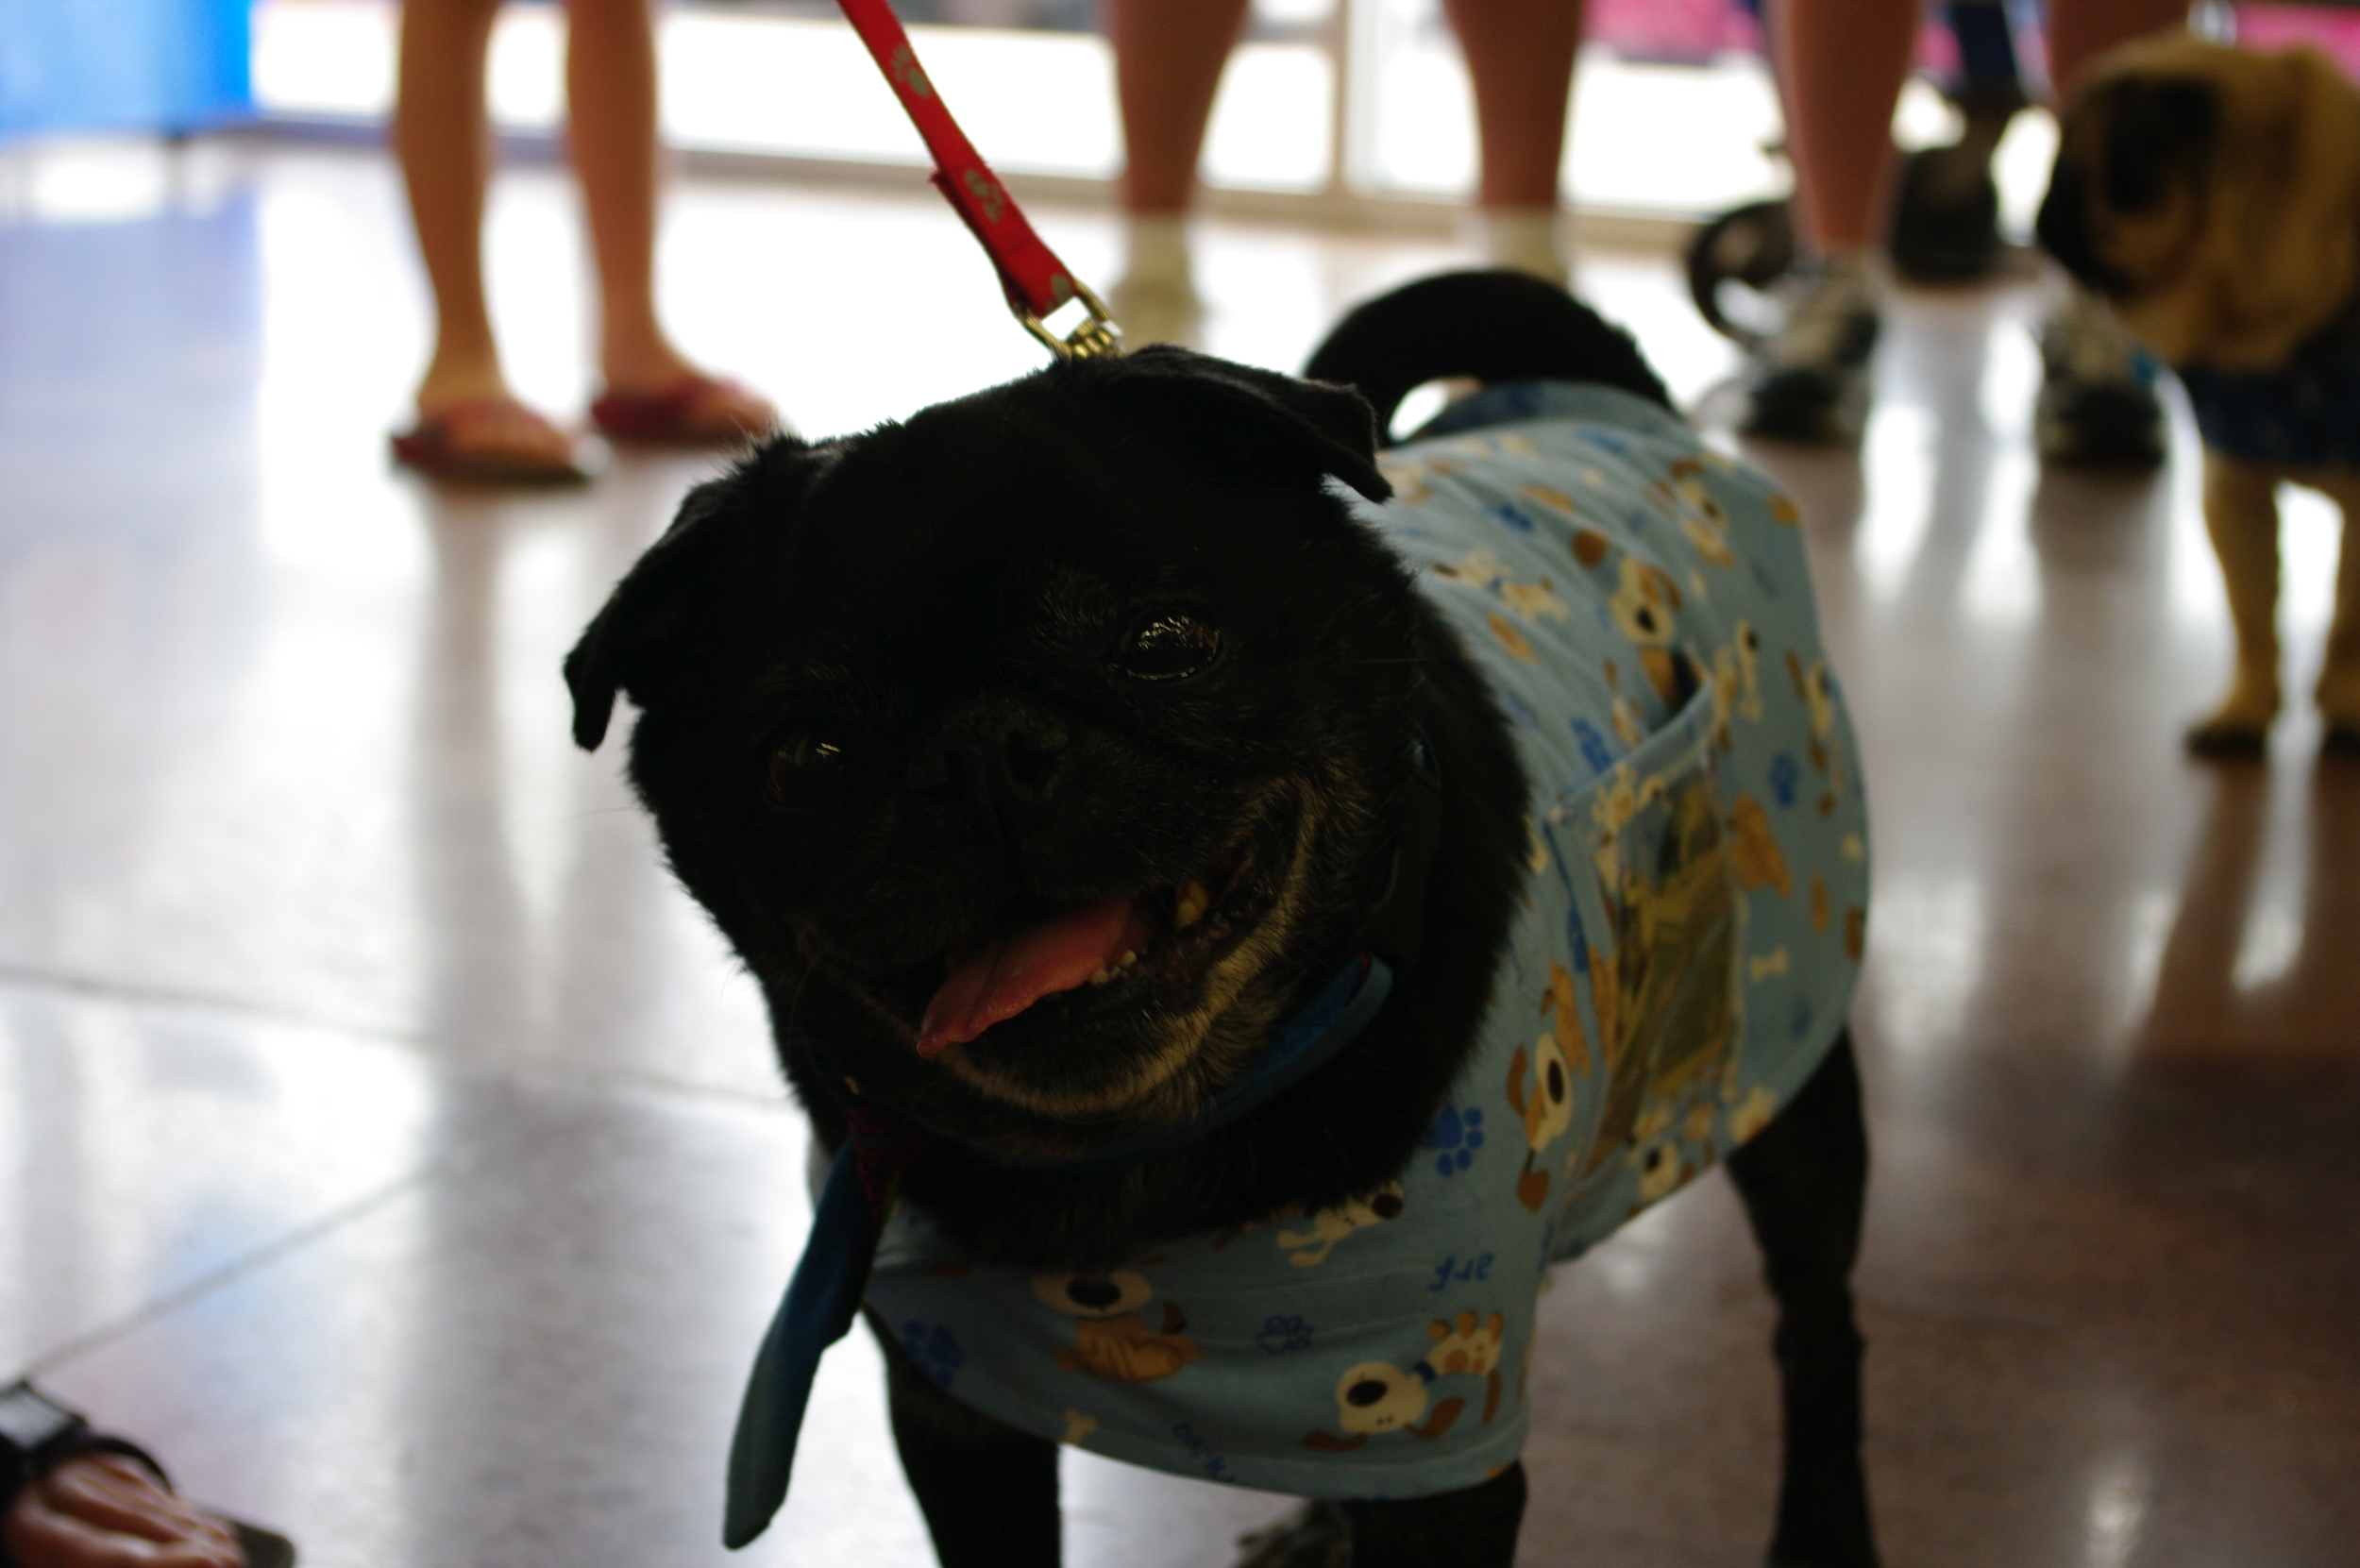 PUGSLEY # 6 - ADOPTED JUNE 2014